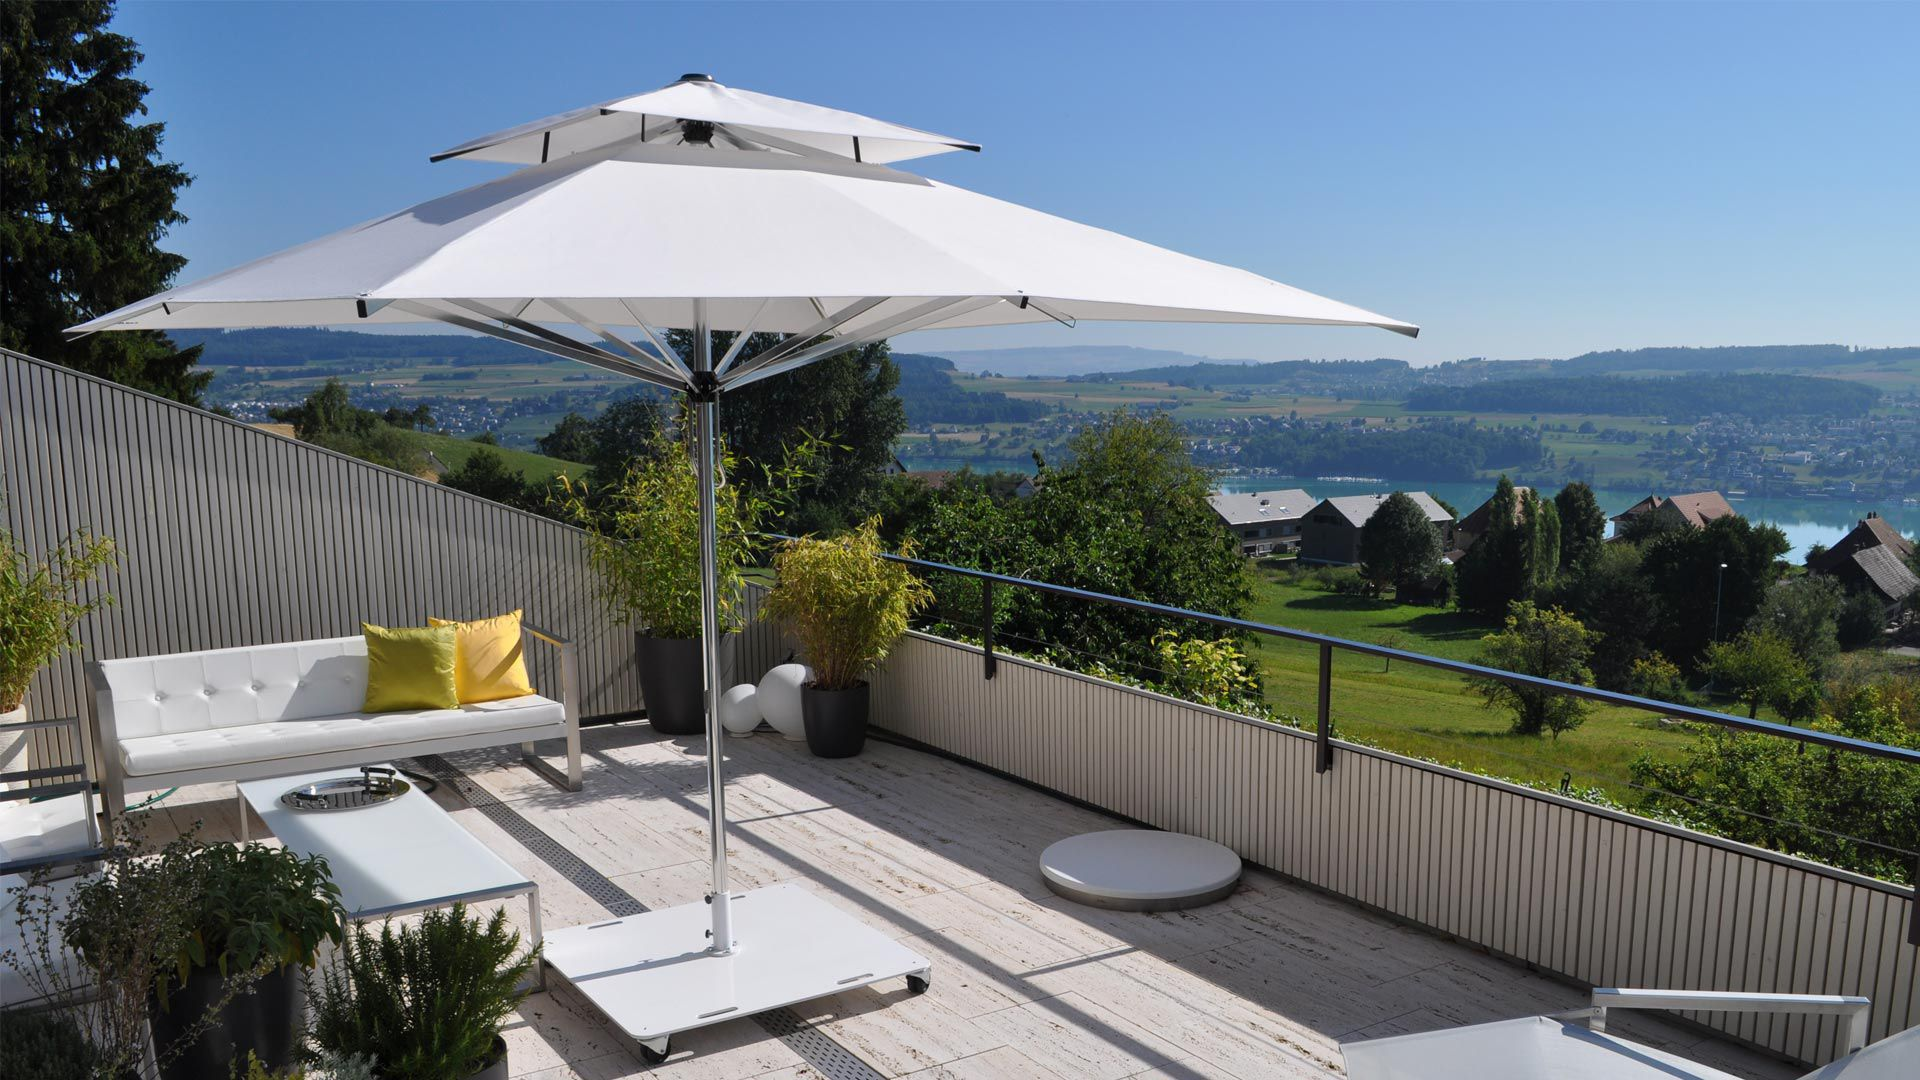 mercial patio umbrella for hotels for bars for public pools